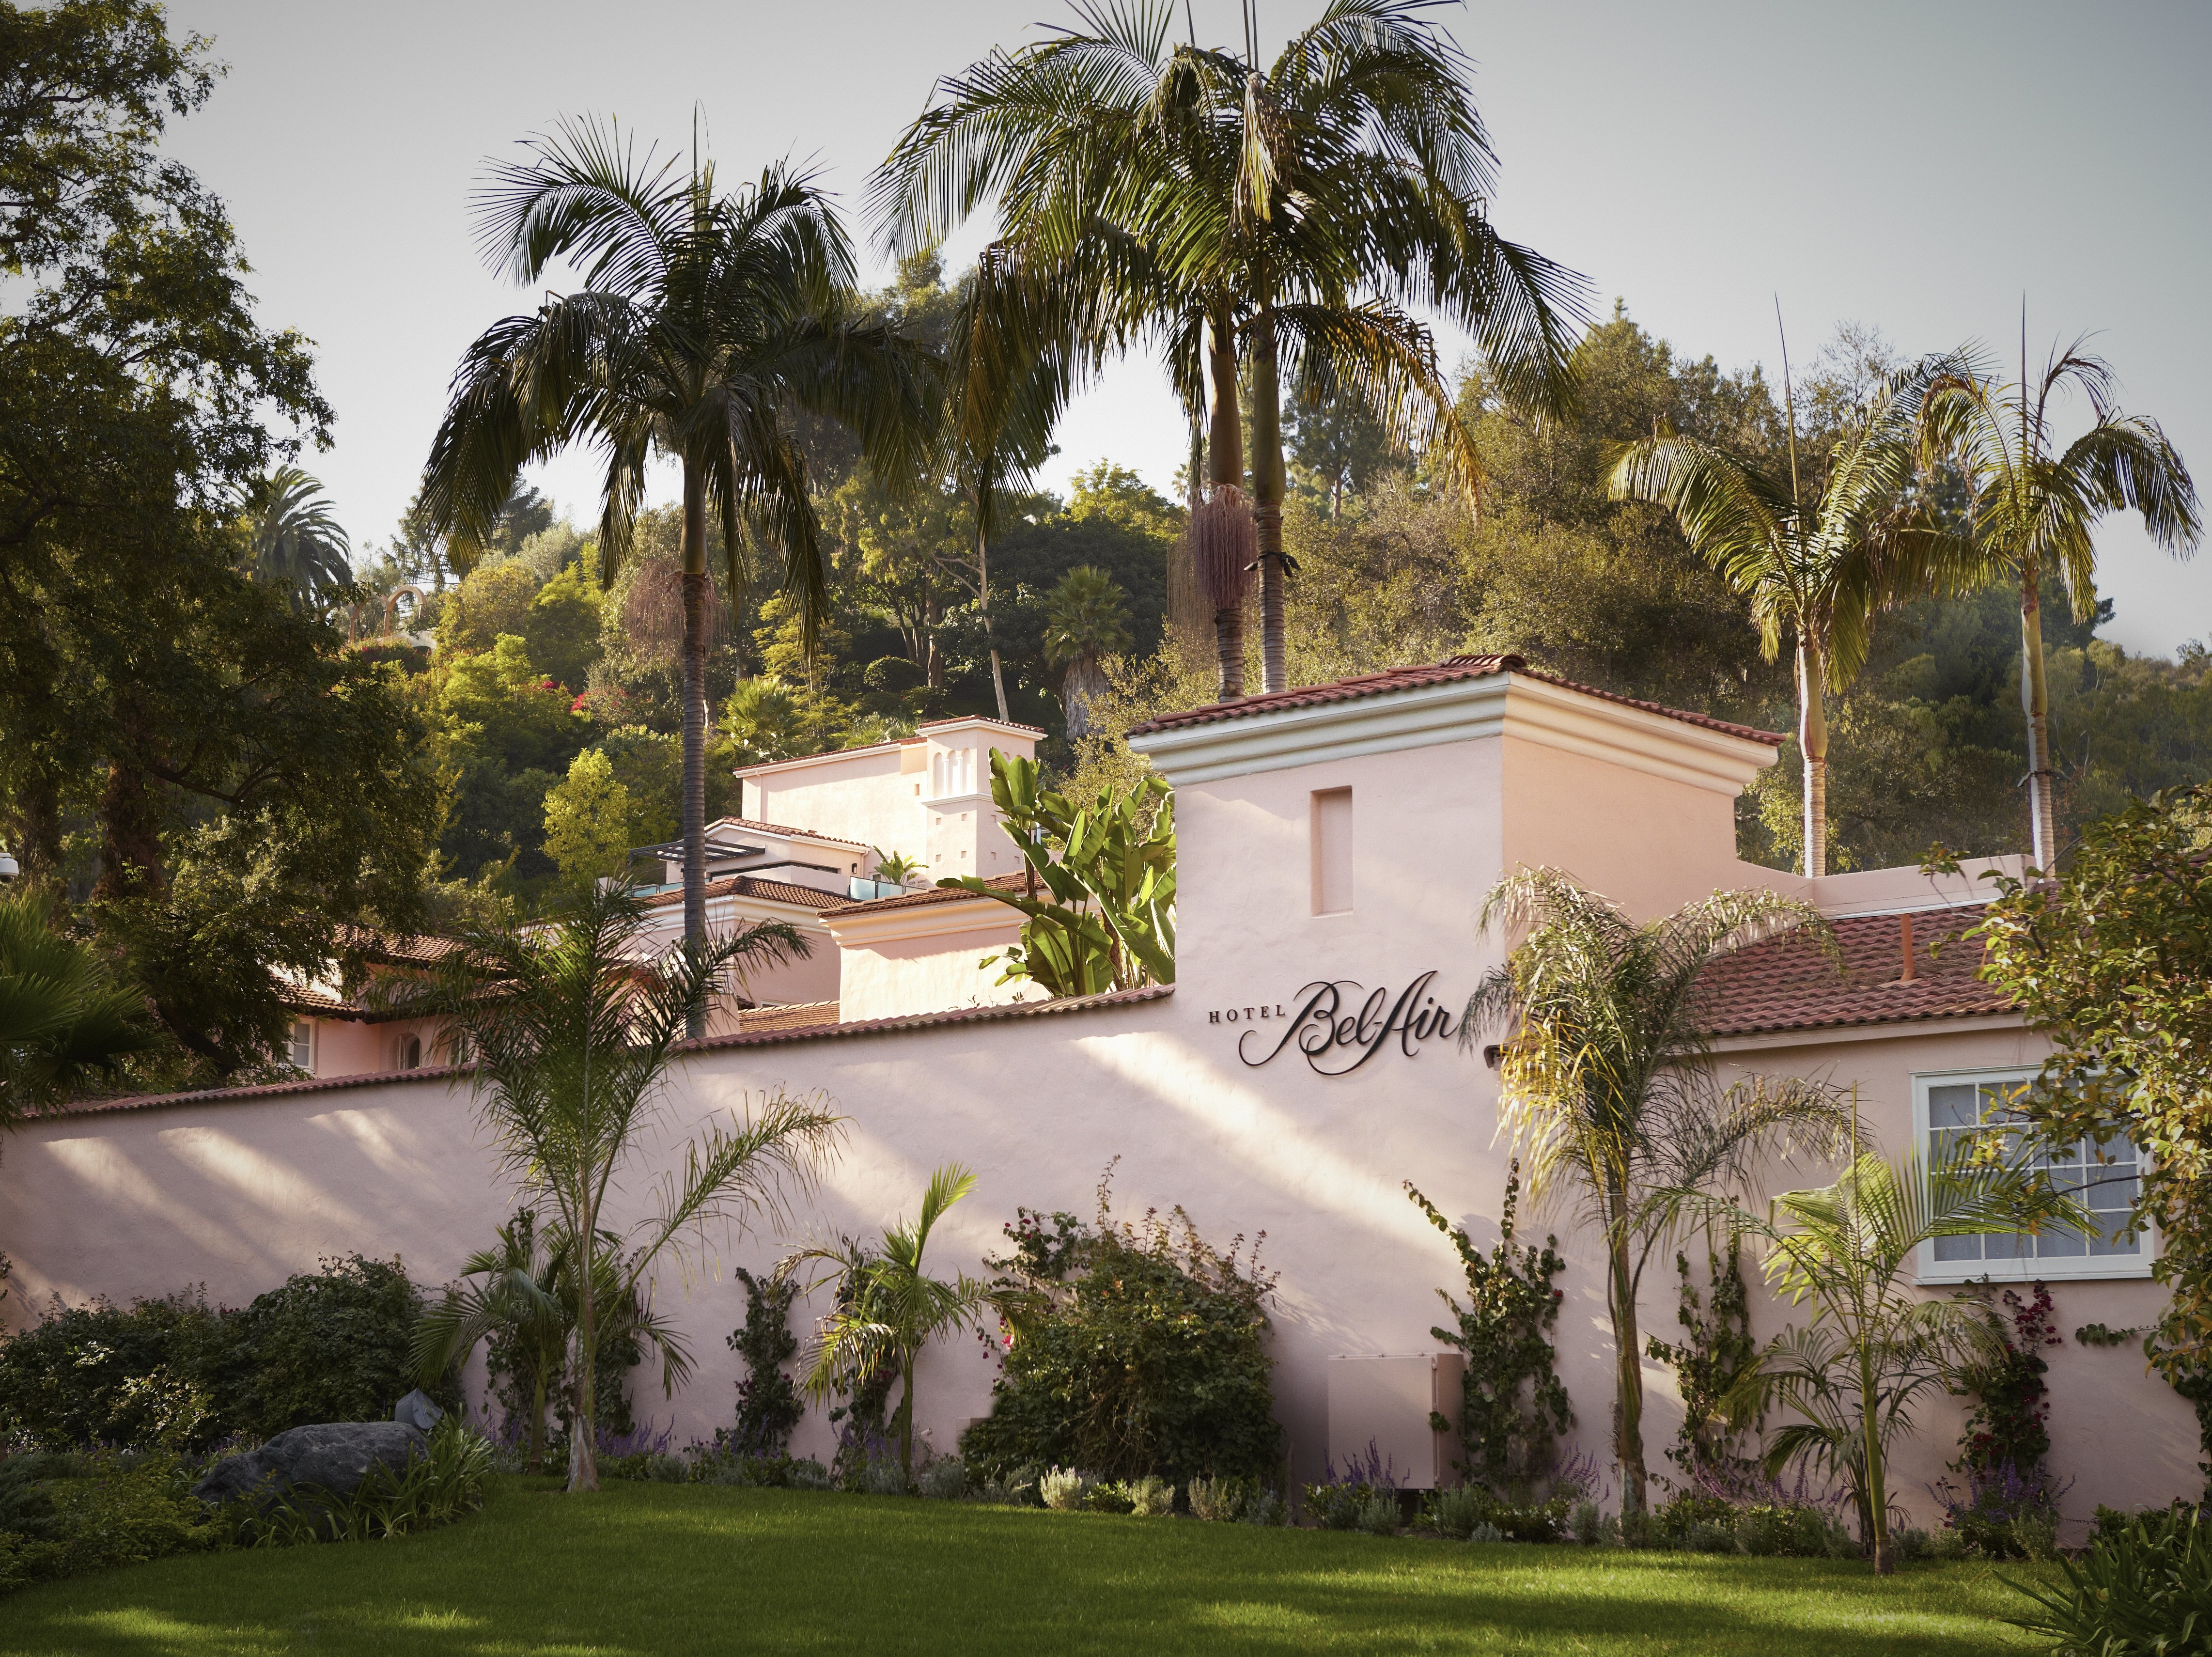 Hotel Bel Air, Los Angeles